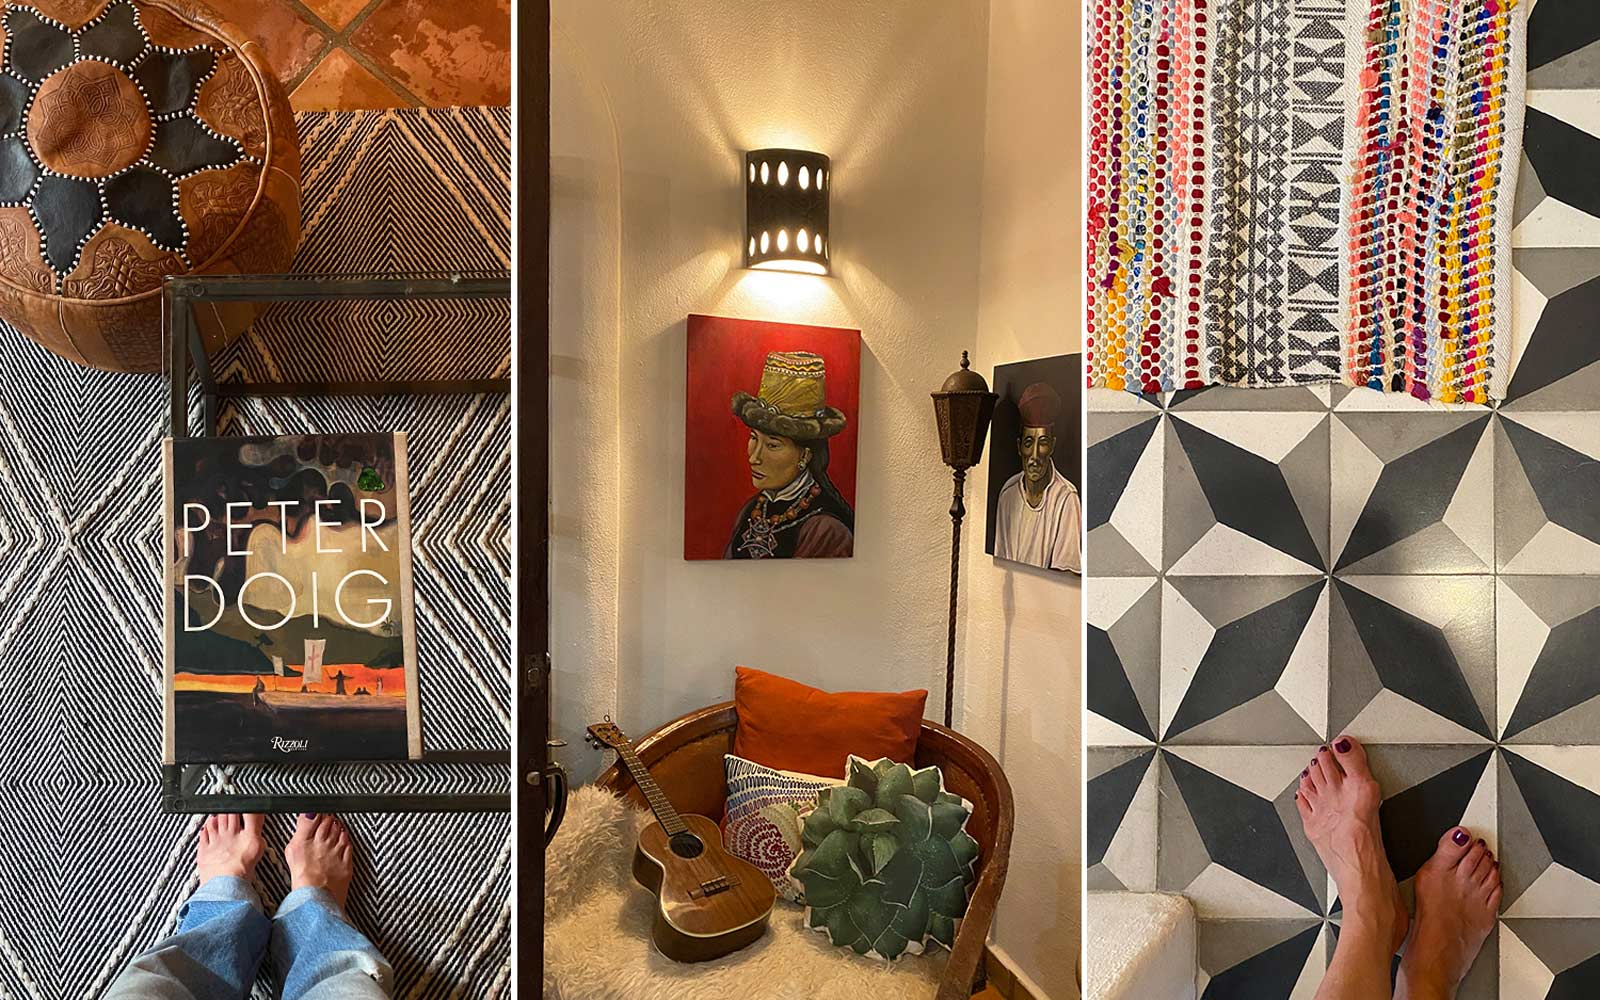 A trio of images from Laura's trip to San Pancho, Mexico.